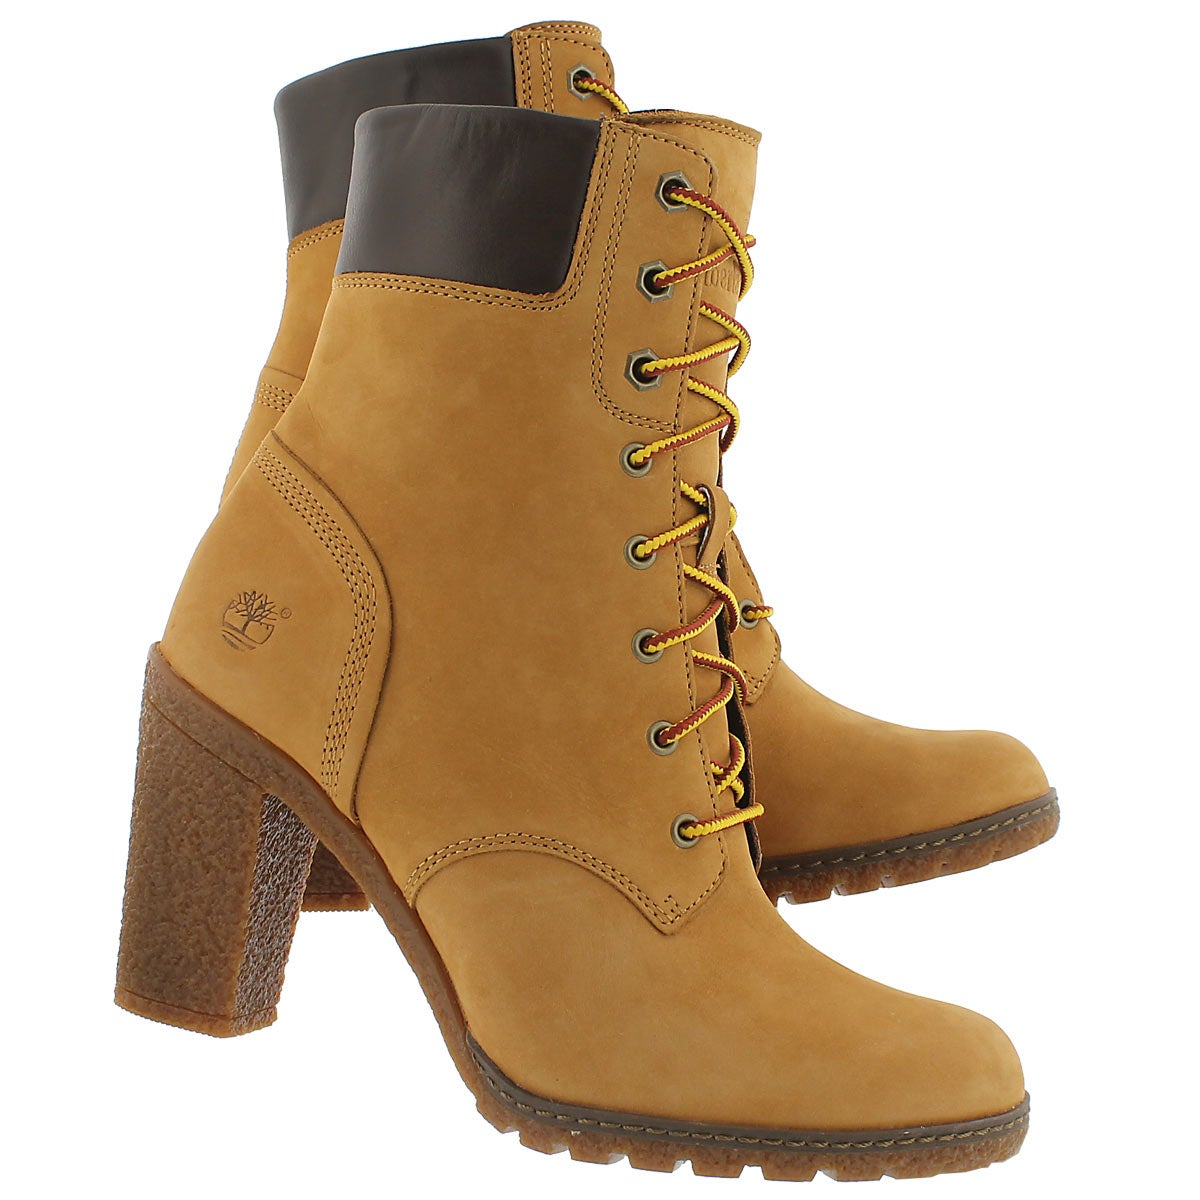 Lds Glancy laced wheat nubuck boot